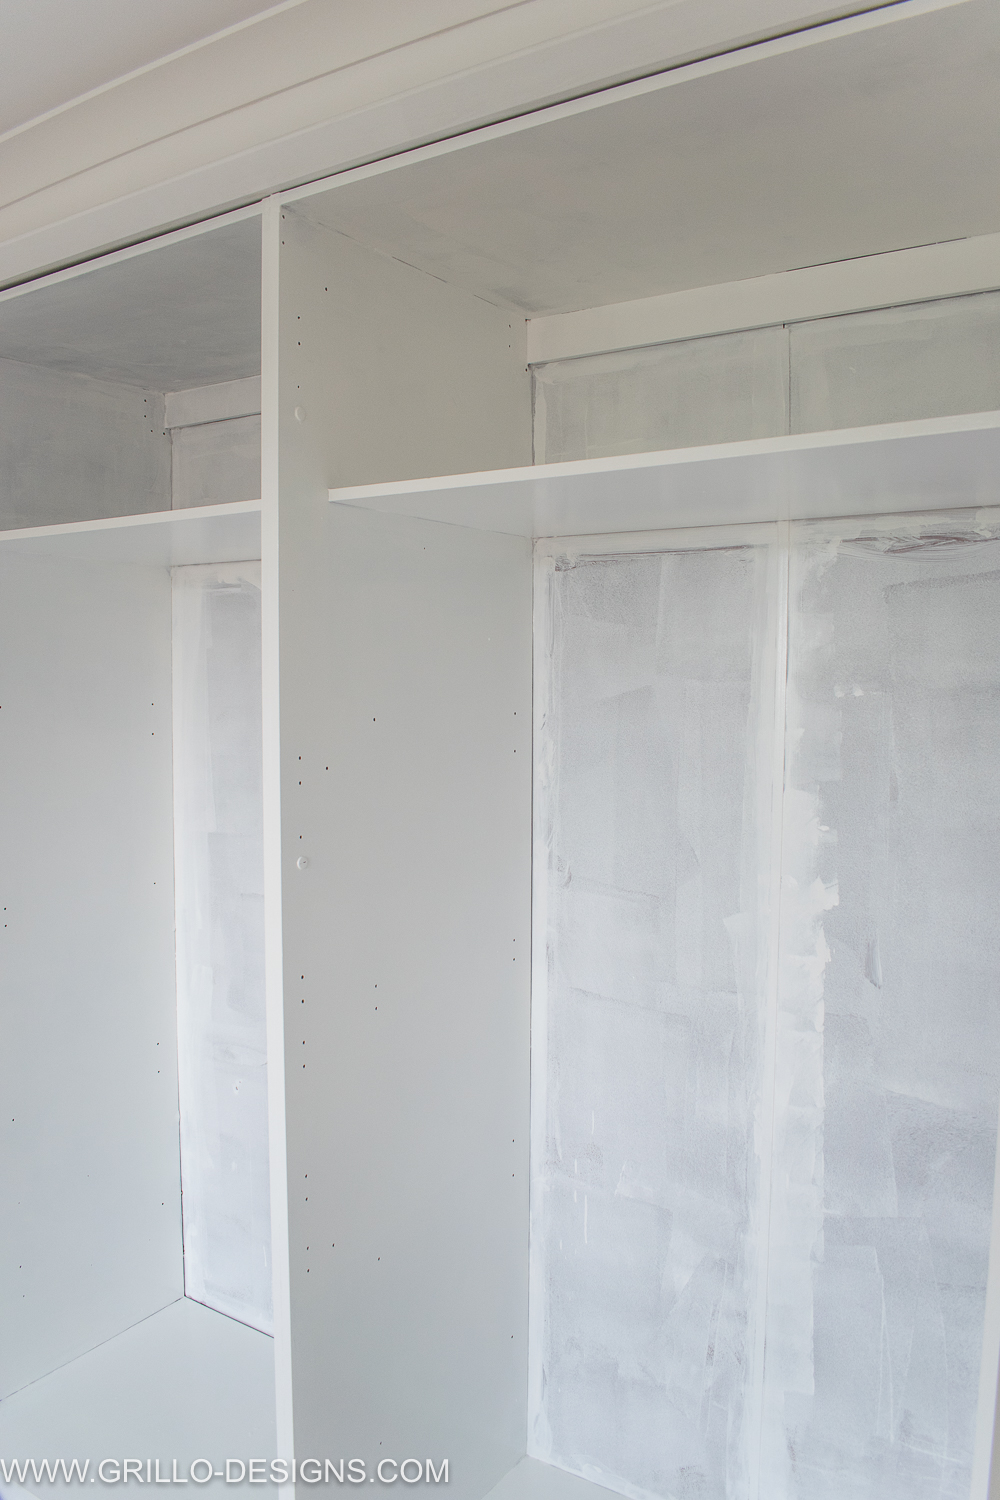 how to paint melamine wardrobe doors / Grillo Designs www.grillo-designs.com